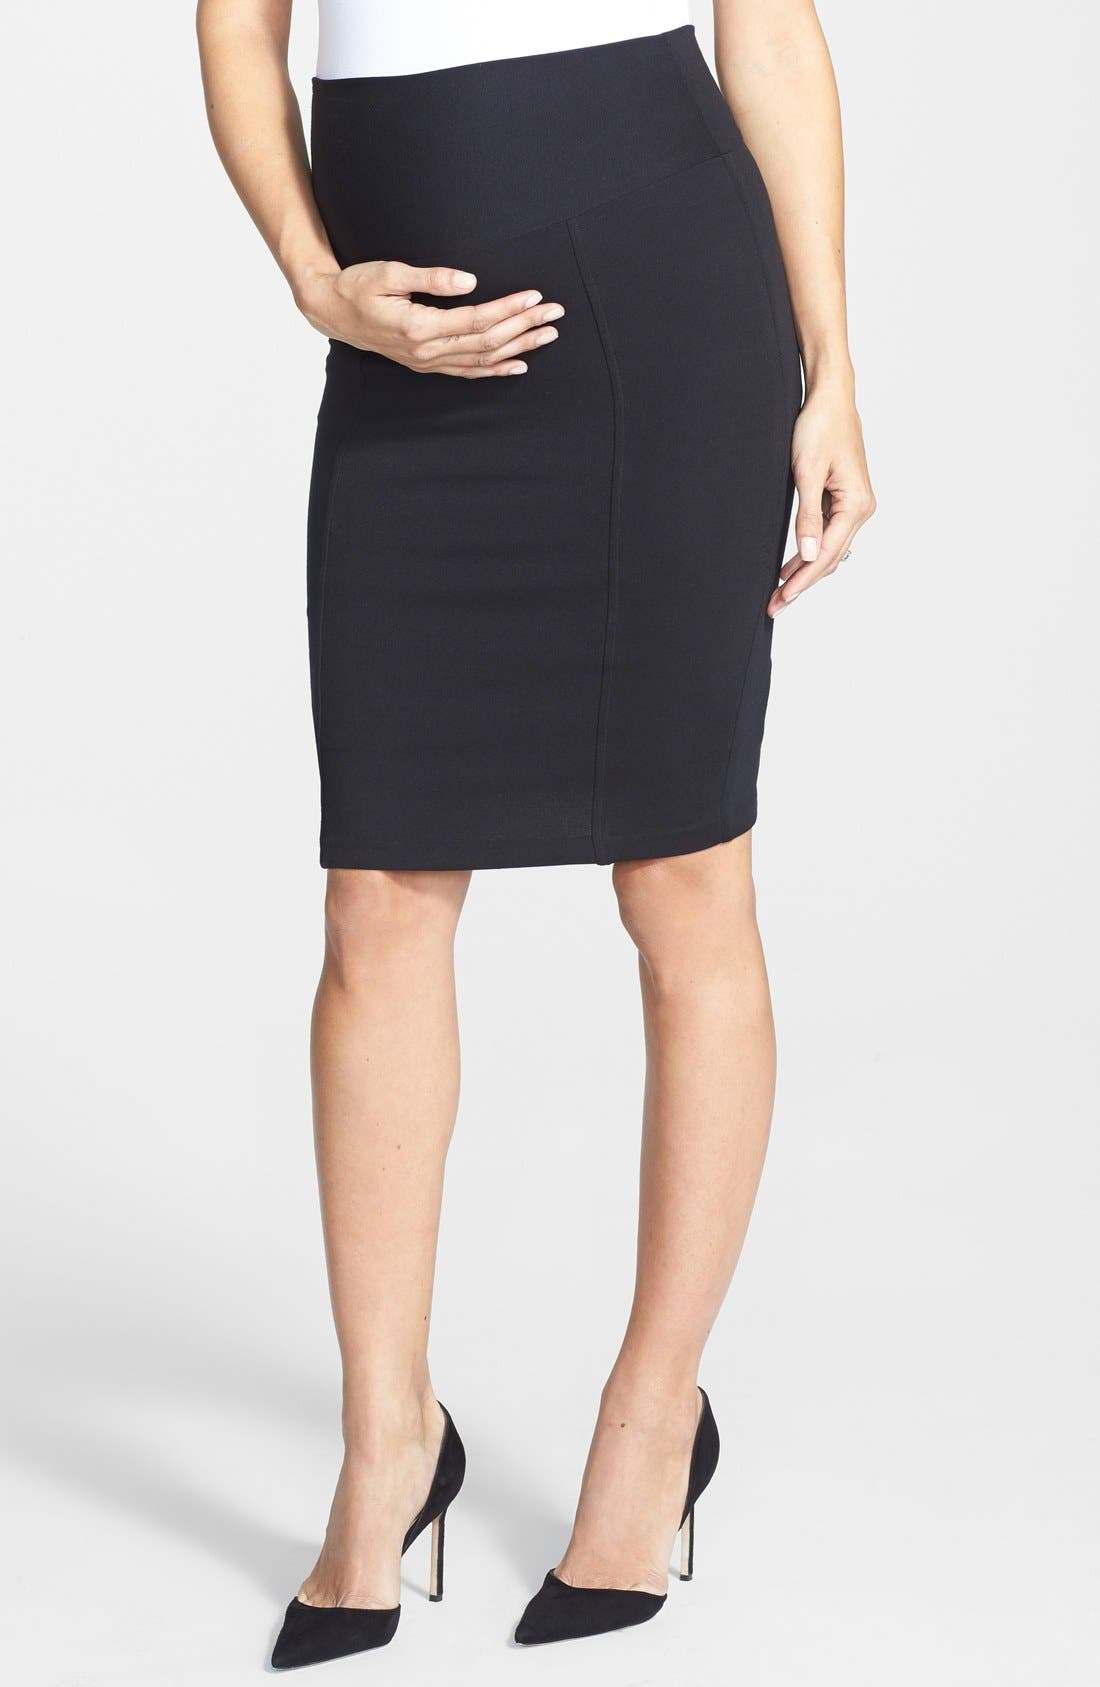 Alternate Image 1 Selected - Eva Alexander London Tailored Ponte Knit Maternity Pencil Skirt